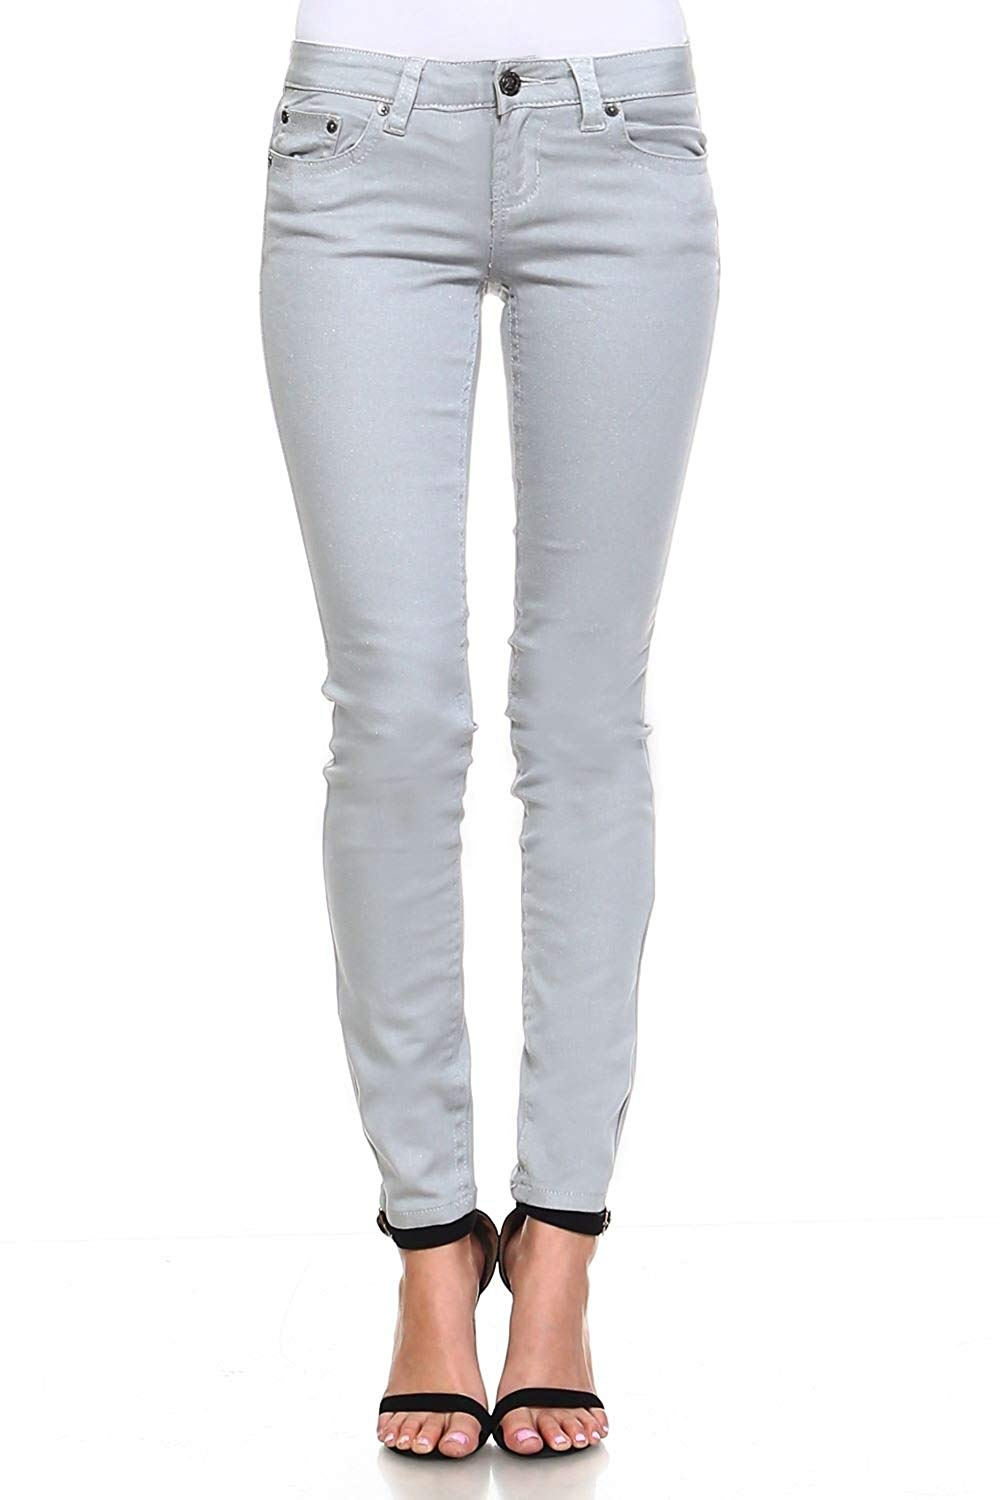 6ac9883aa1a05 Get Quotations · Request Jeans Juniors Pants Skinny Mid-Rise Stretch Metallic  Jeans 5-Pocket Style